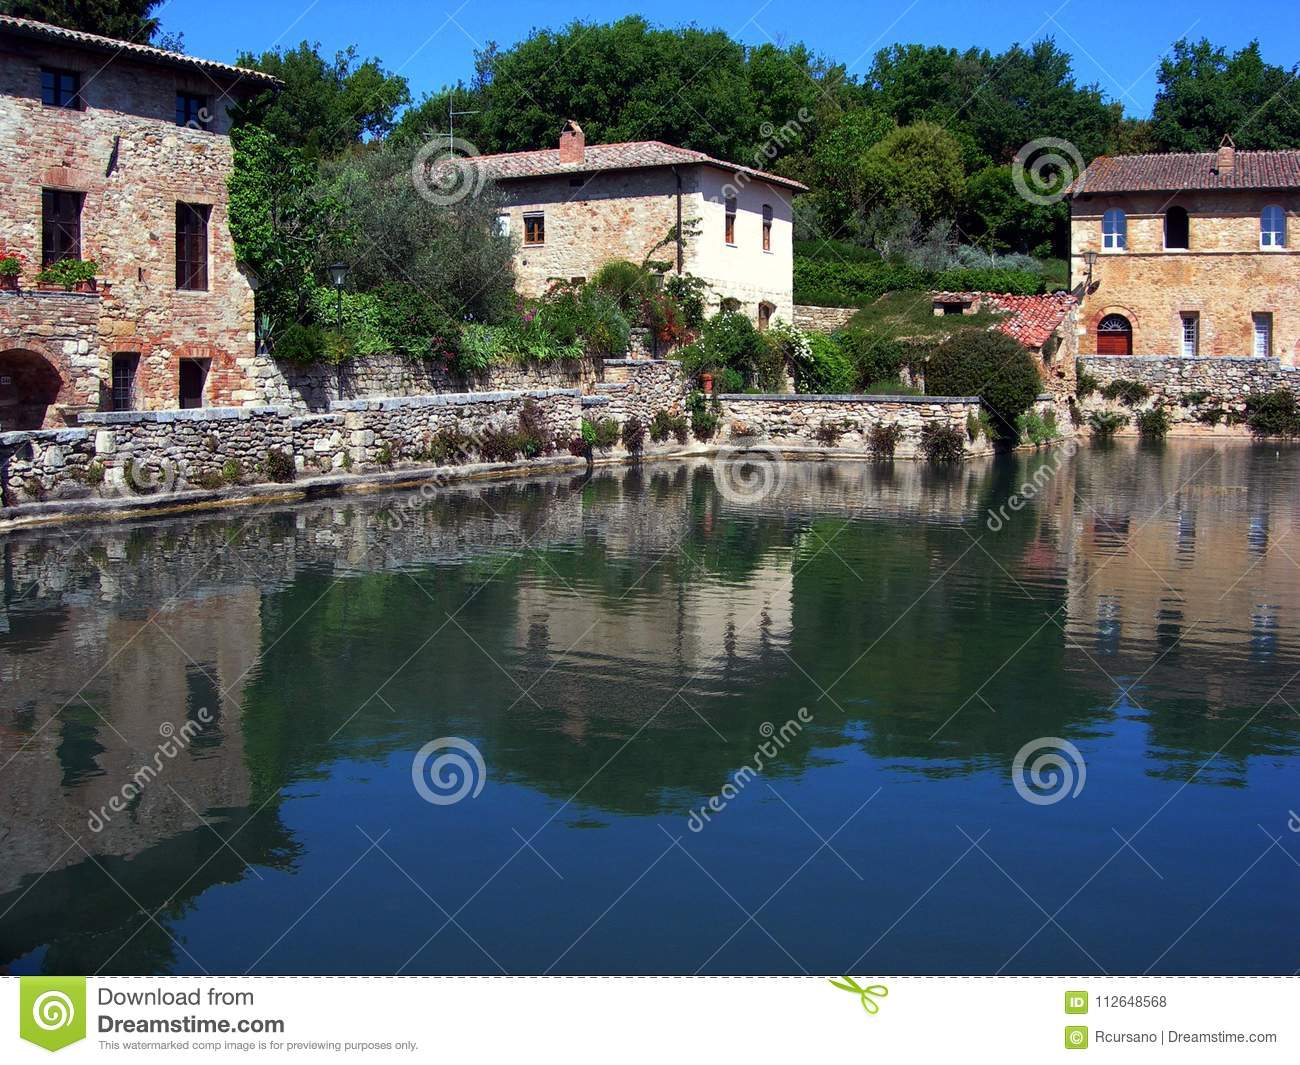 https://thumbs.dreamstime.com/z/italy-tuscany-thermal-water-tub-bagno-vignoni-small-village-famous-its-waters-112648568.jpg